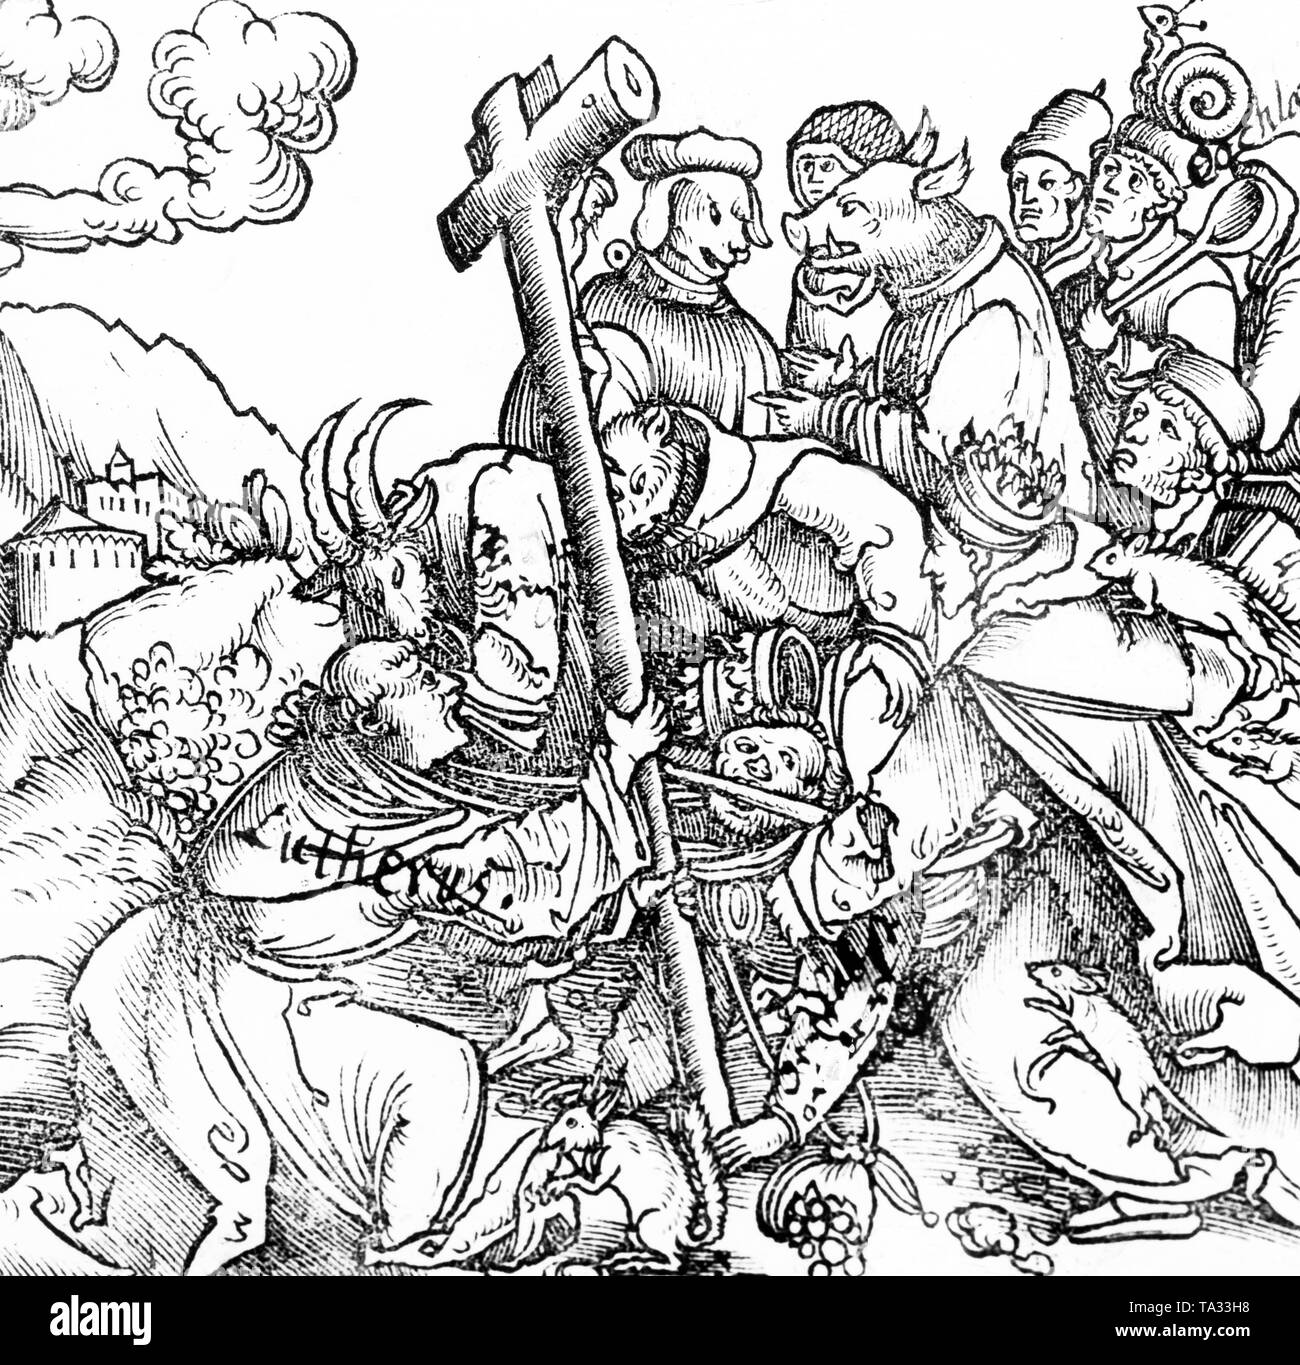 Martin Luther directs the cross against his opponents, who are represented as animals. This satirical work of an anonymous artist is aimed directly against the Pope. - Stock Image